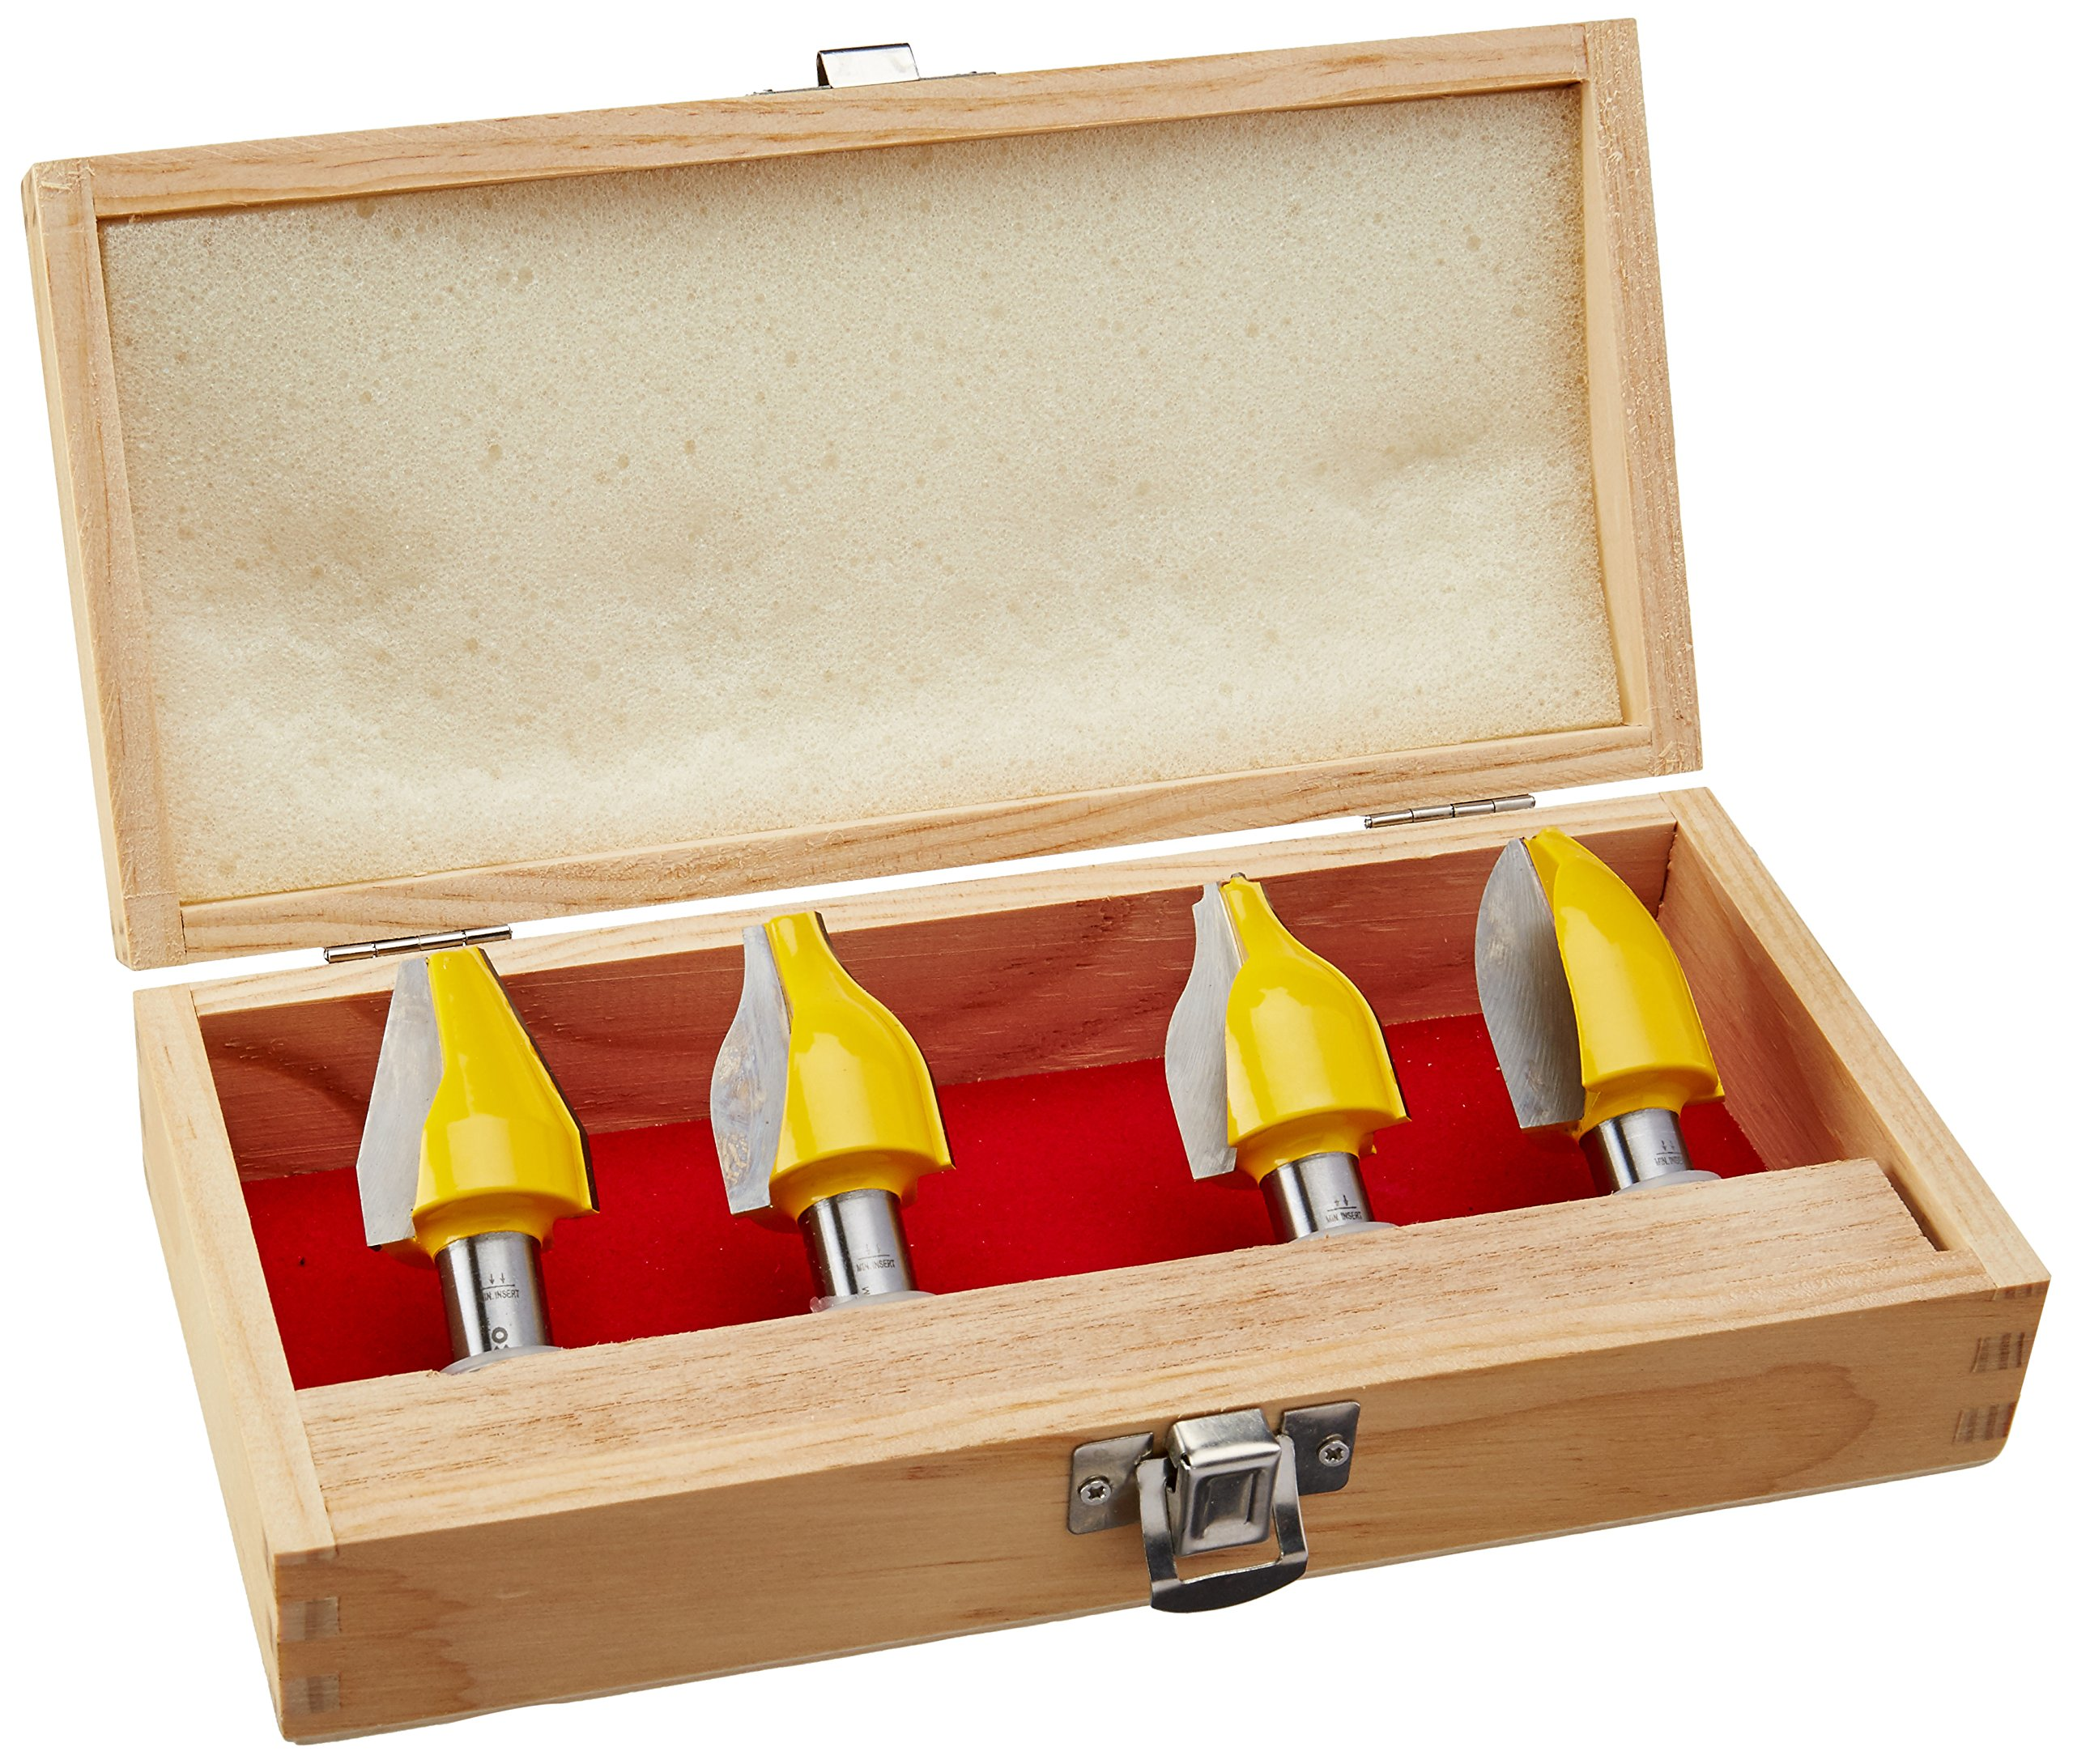 Yonico 12404 4 Bit Vertical Raised Panel Router Bit Set with 1/2-Inch Shank